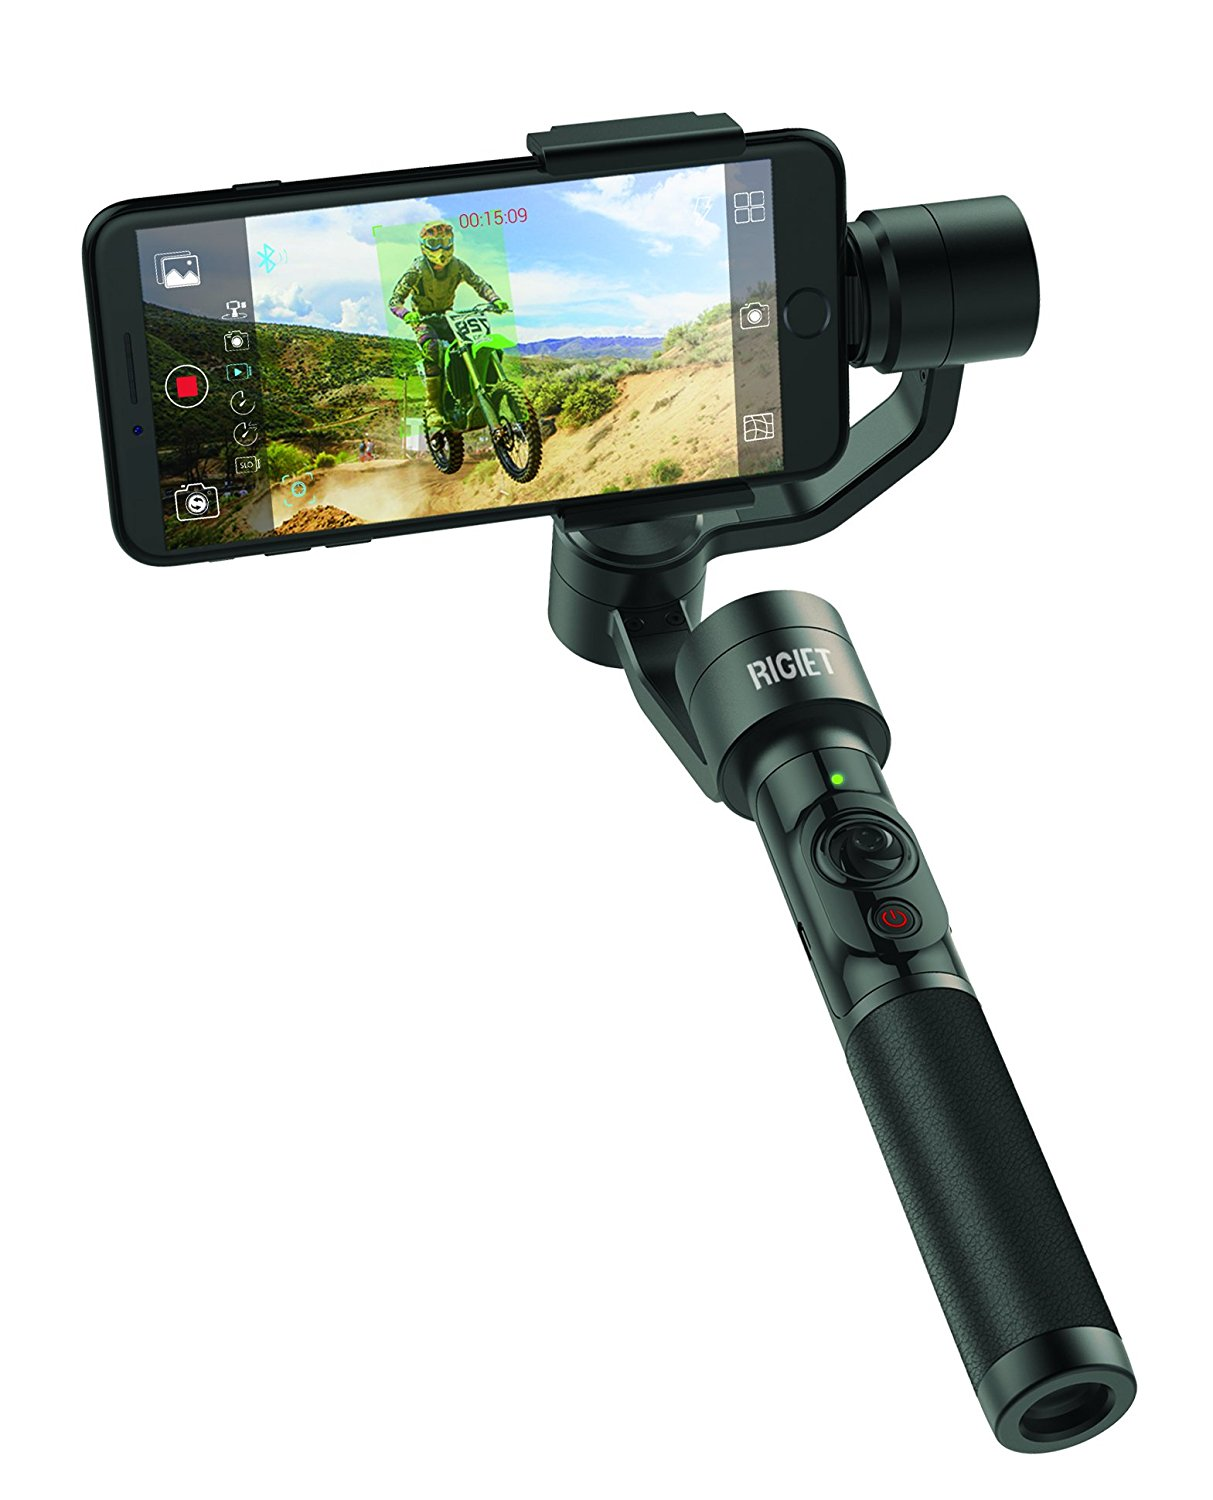 DOBOT RiGIET 3-Axis Handheld Gimbal for Smartphone and GoPro